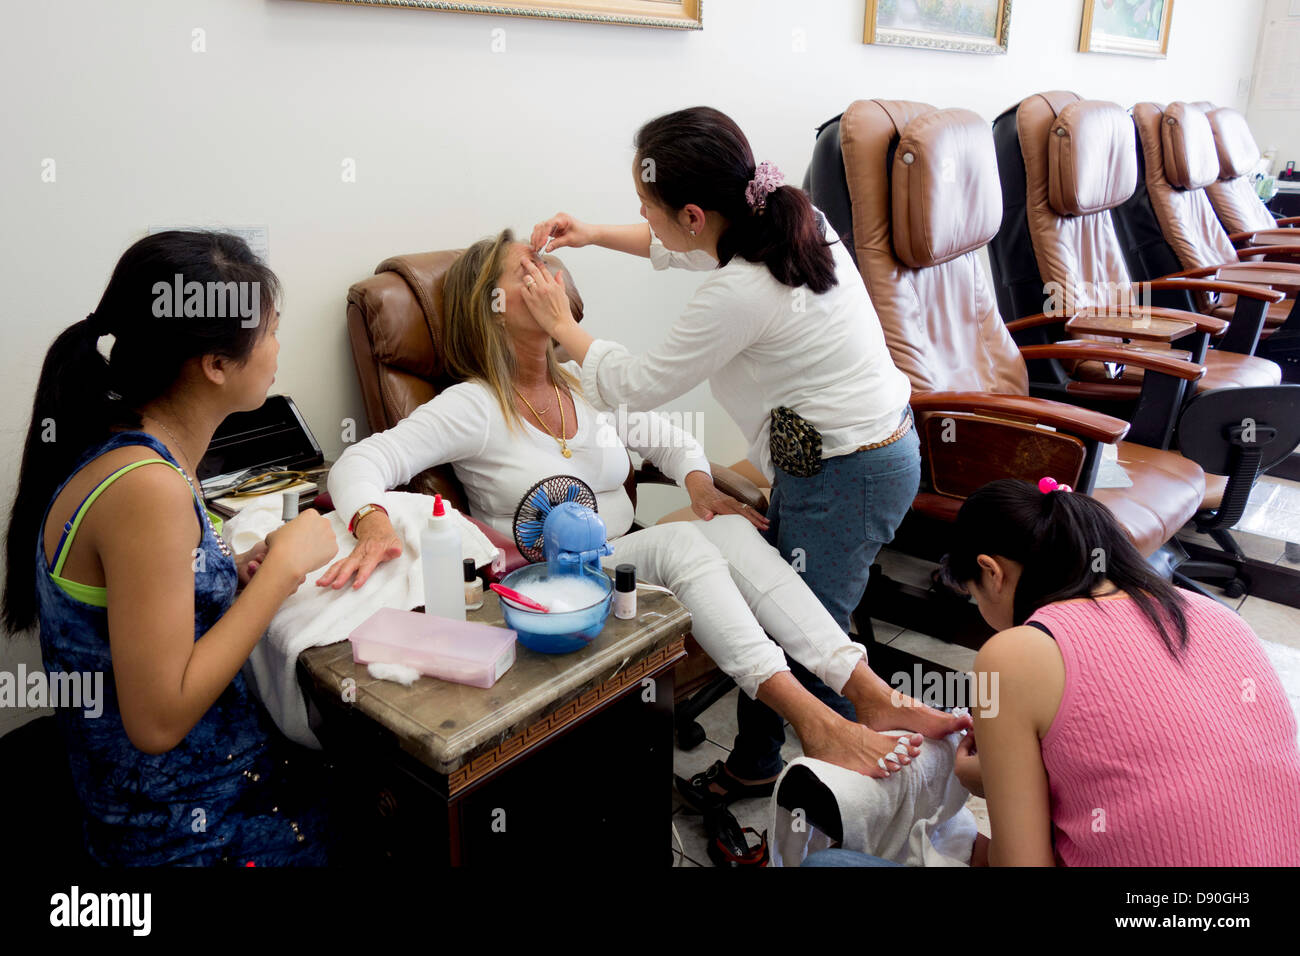 American woman gets manicure and pedicure at Vietnamese owned nail ...